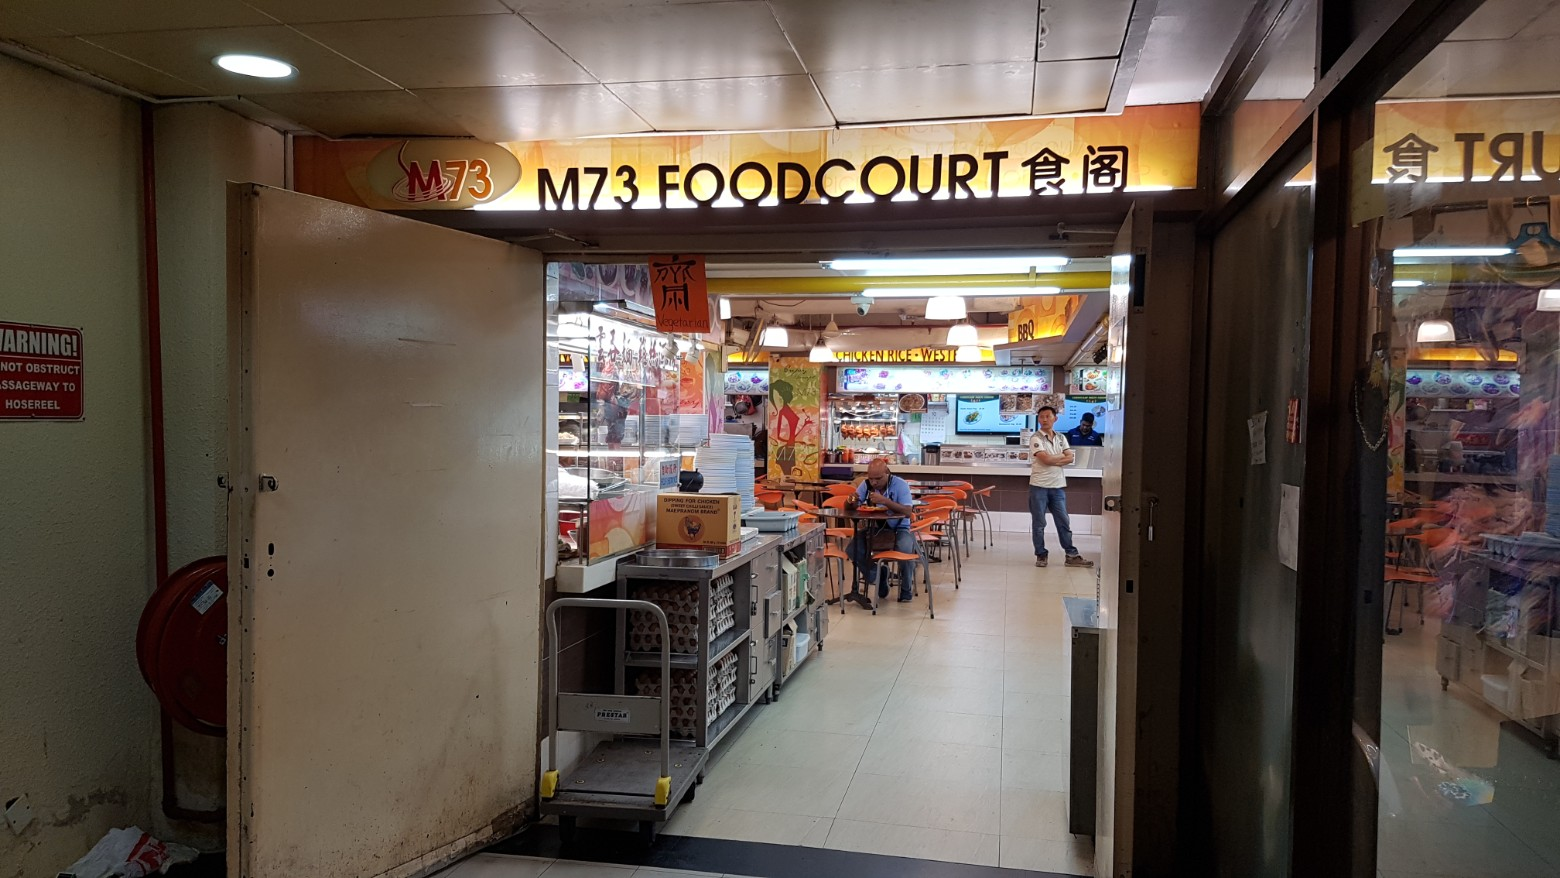 Orchard Towers M73 Foodcourt